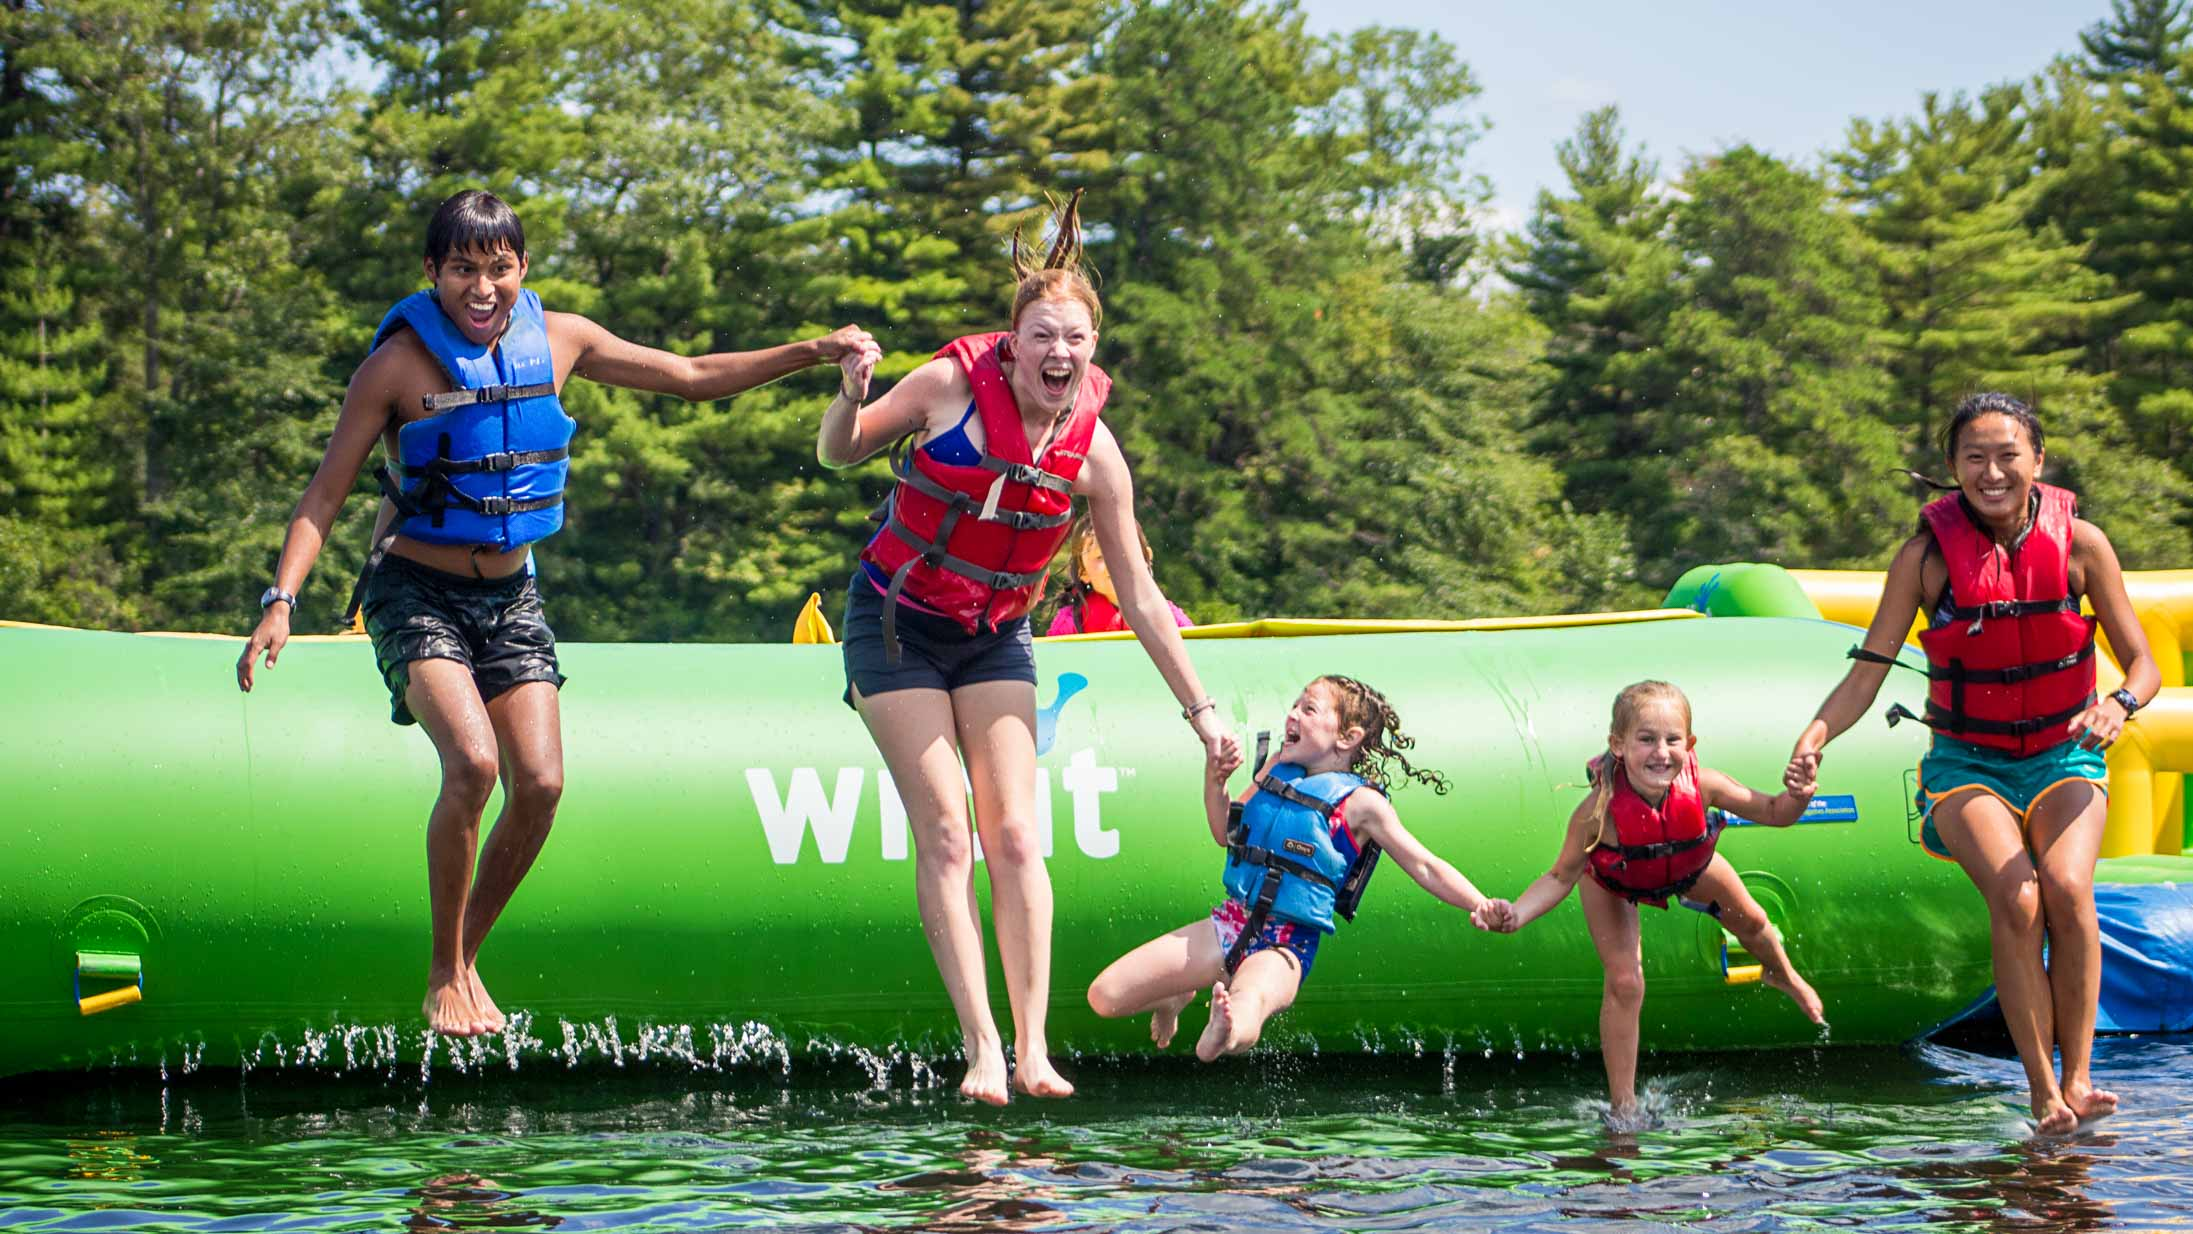 Everwood Day Camp – A Day Camp for Ages 4-15 Located in